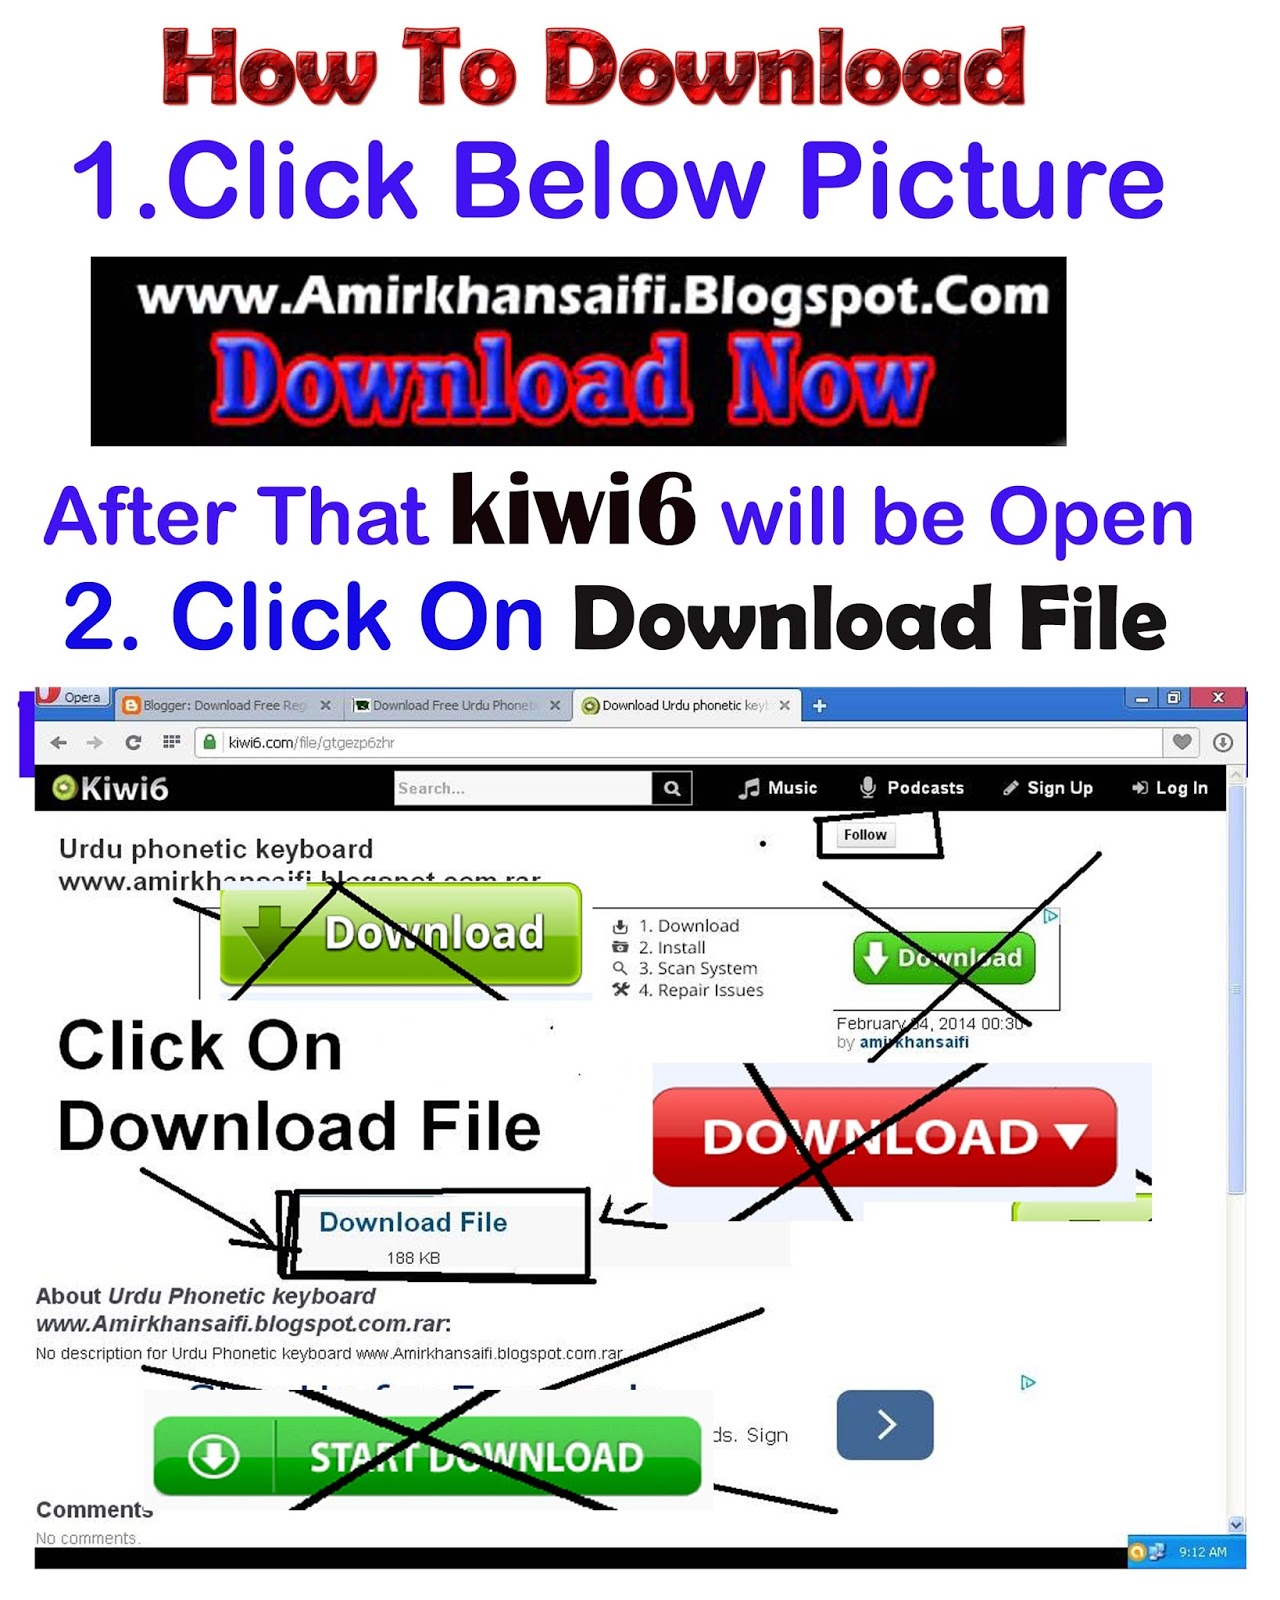 ms office 10 free download filehippo